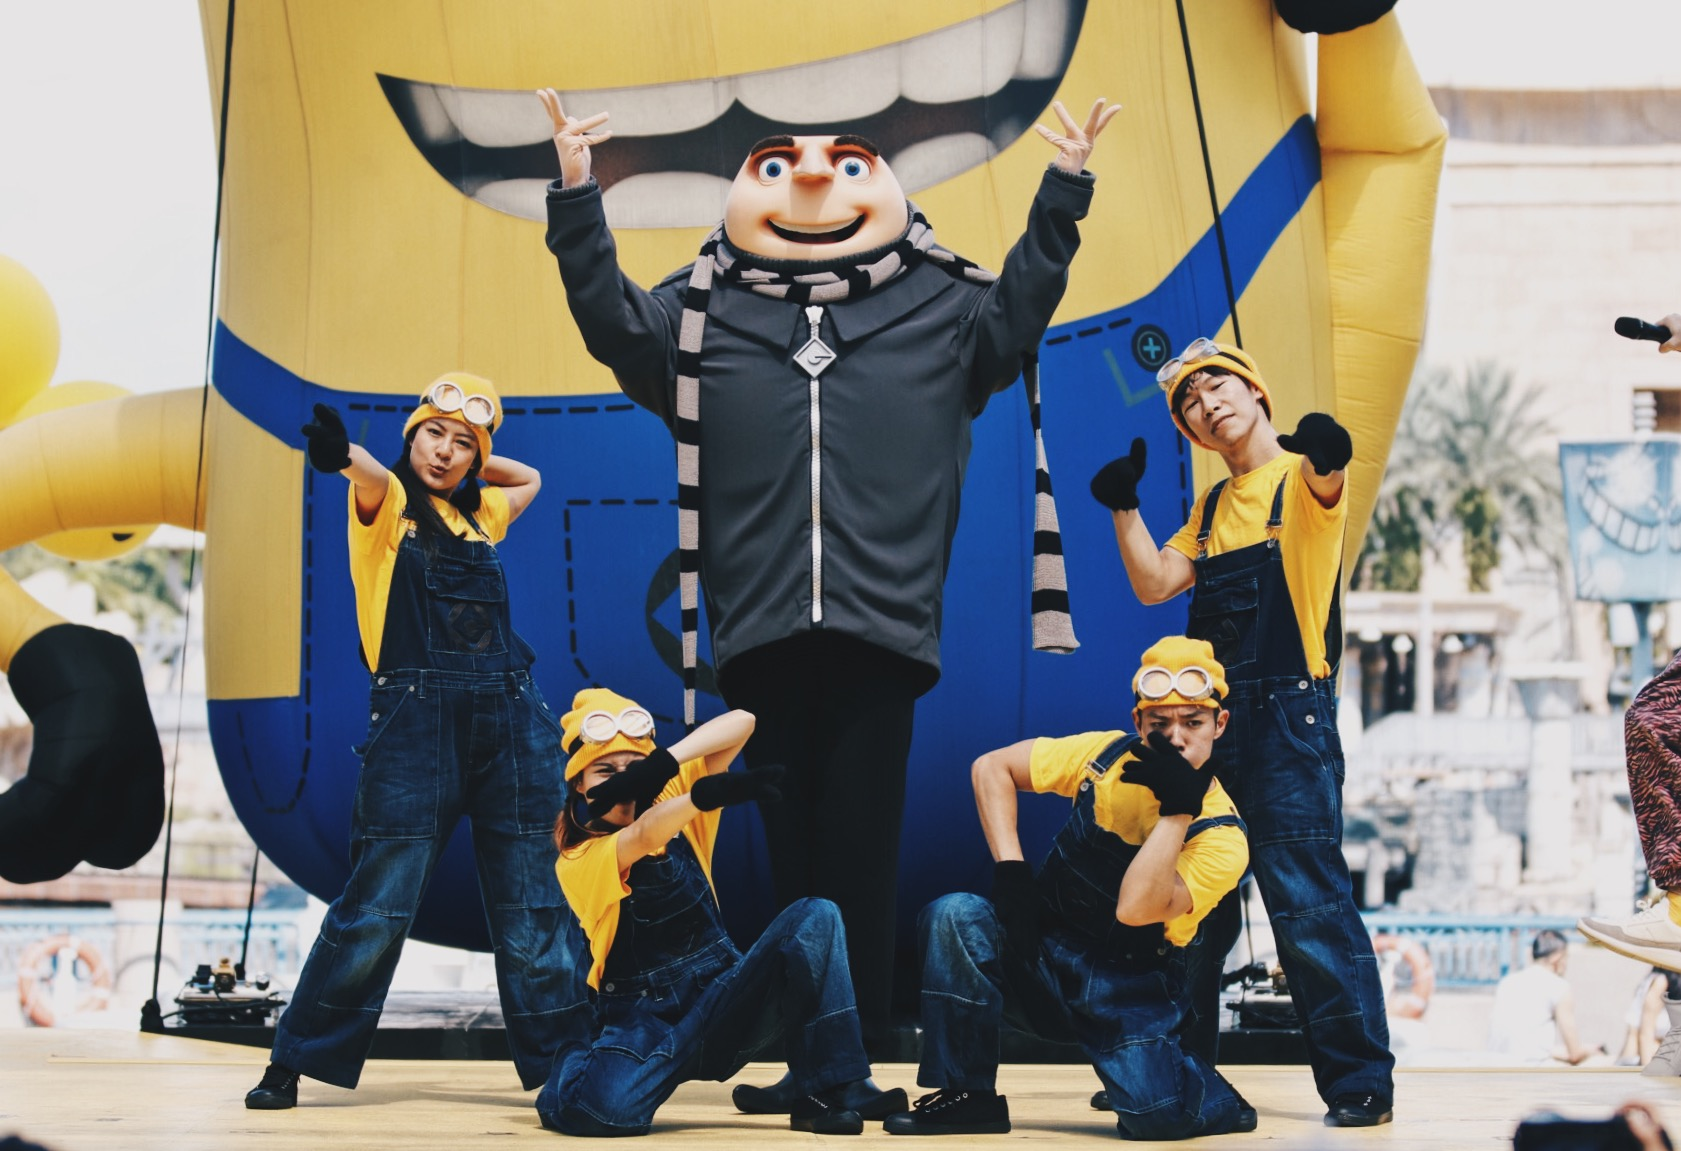 Despicable Me Breakout Party - Gru Meet and Greet at the event